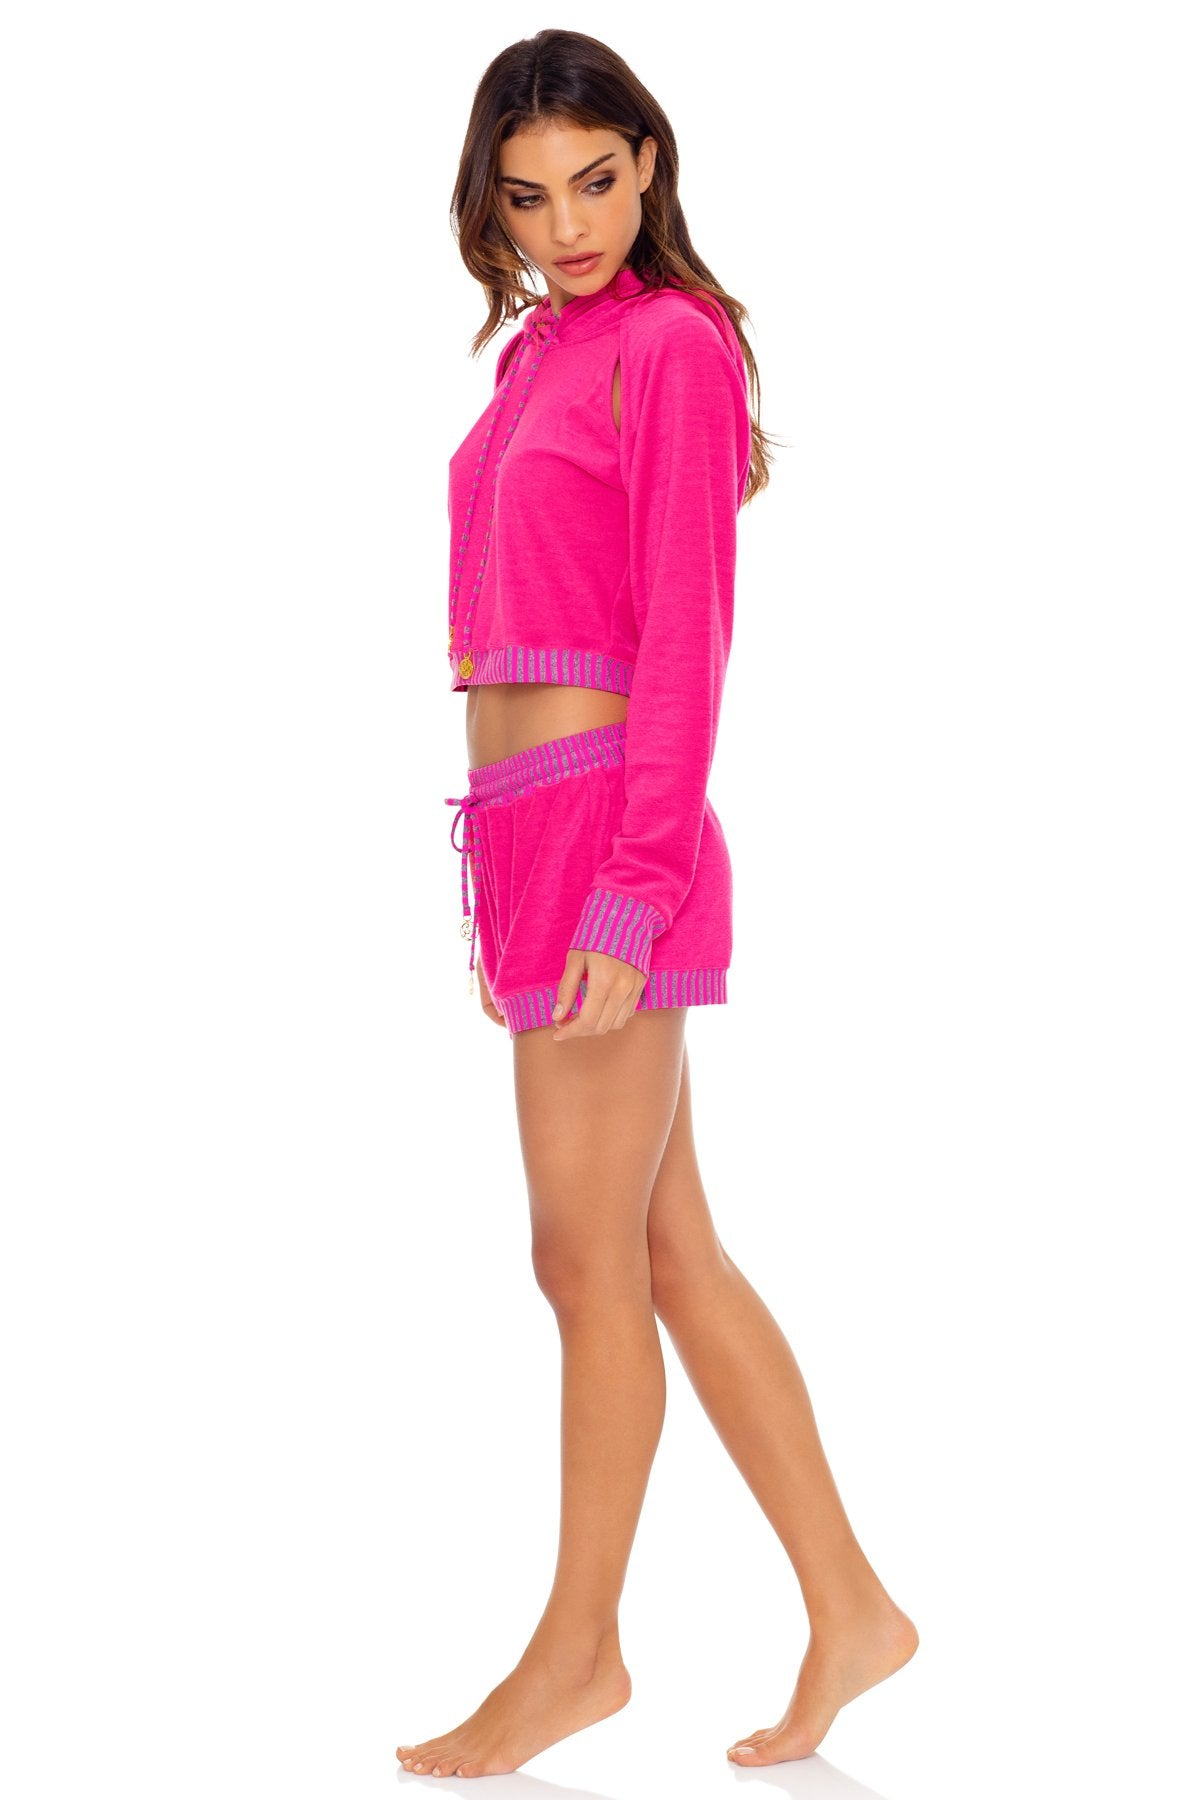 GLOW BABY GLOW - Hoodie Cut Out Cropped Jacket & Relaxed Shorts • Pink